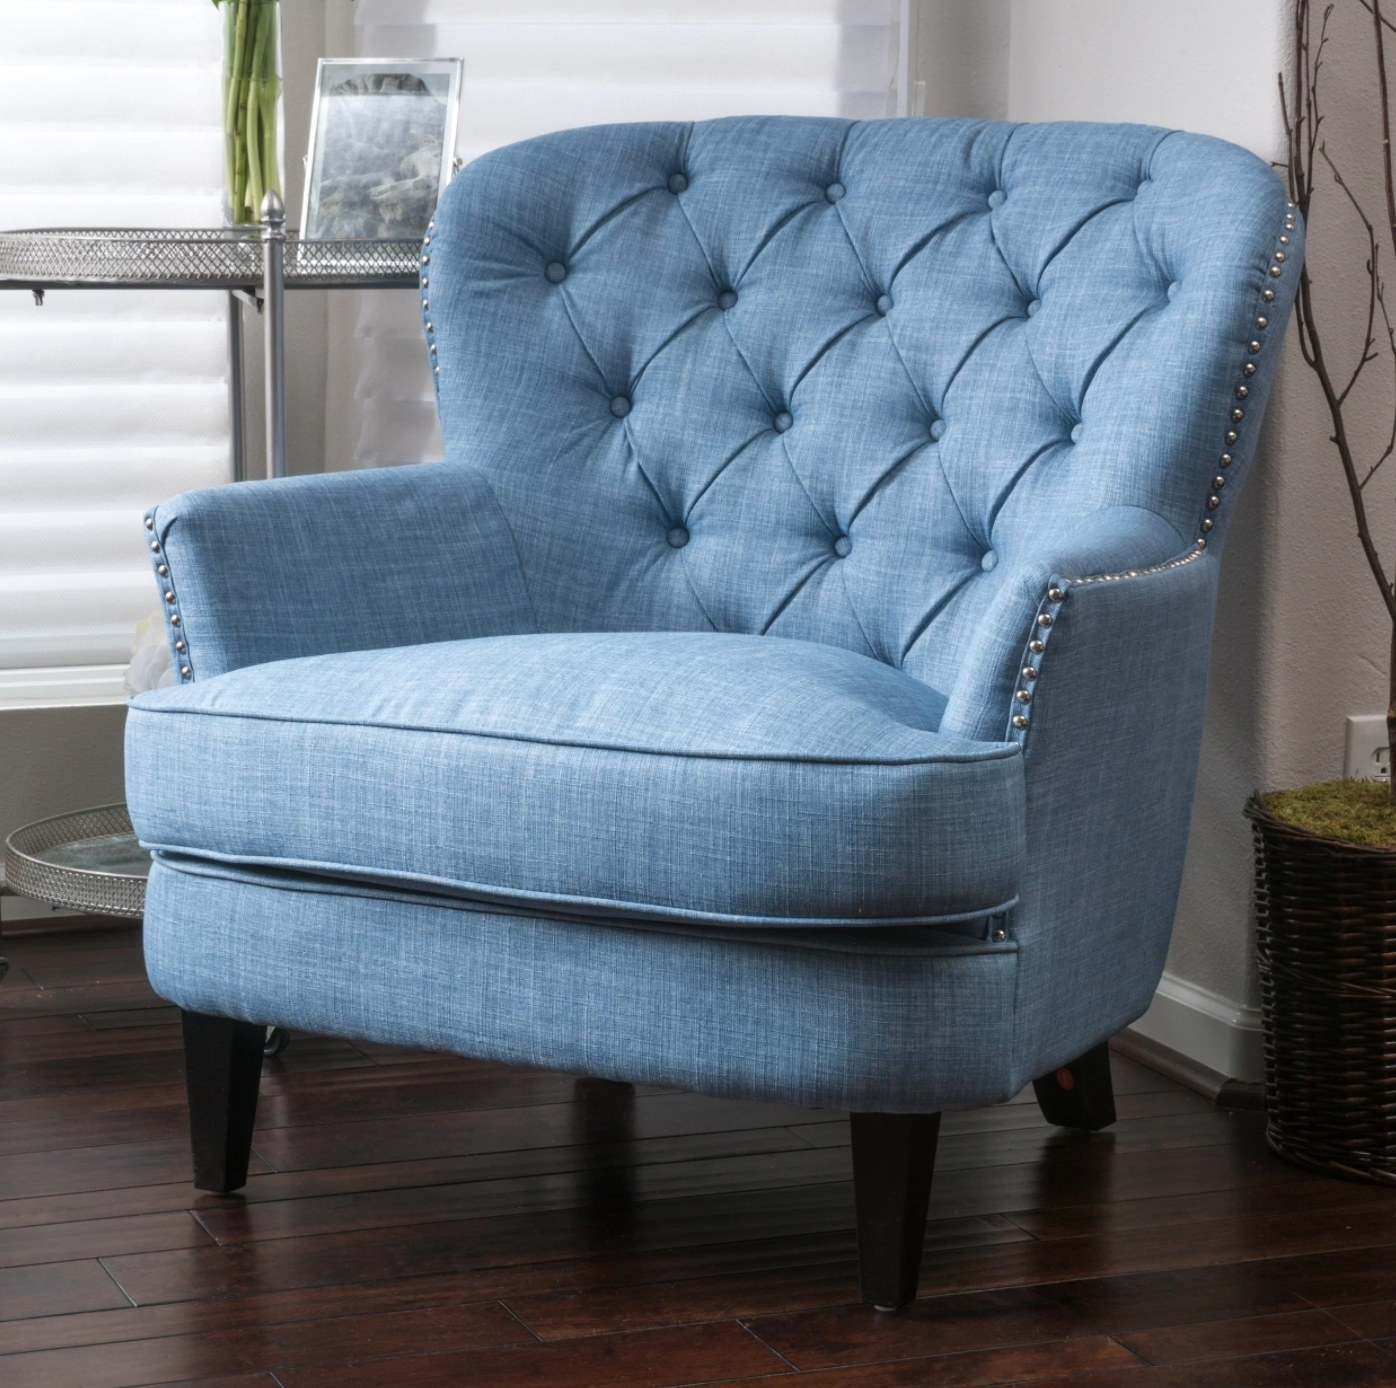 The club chair in light blue